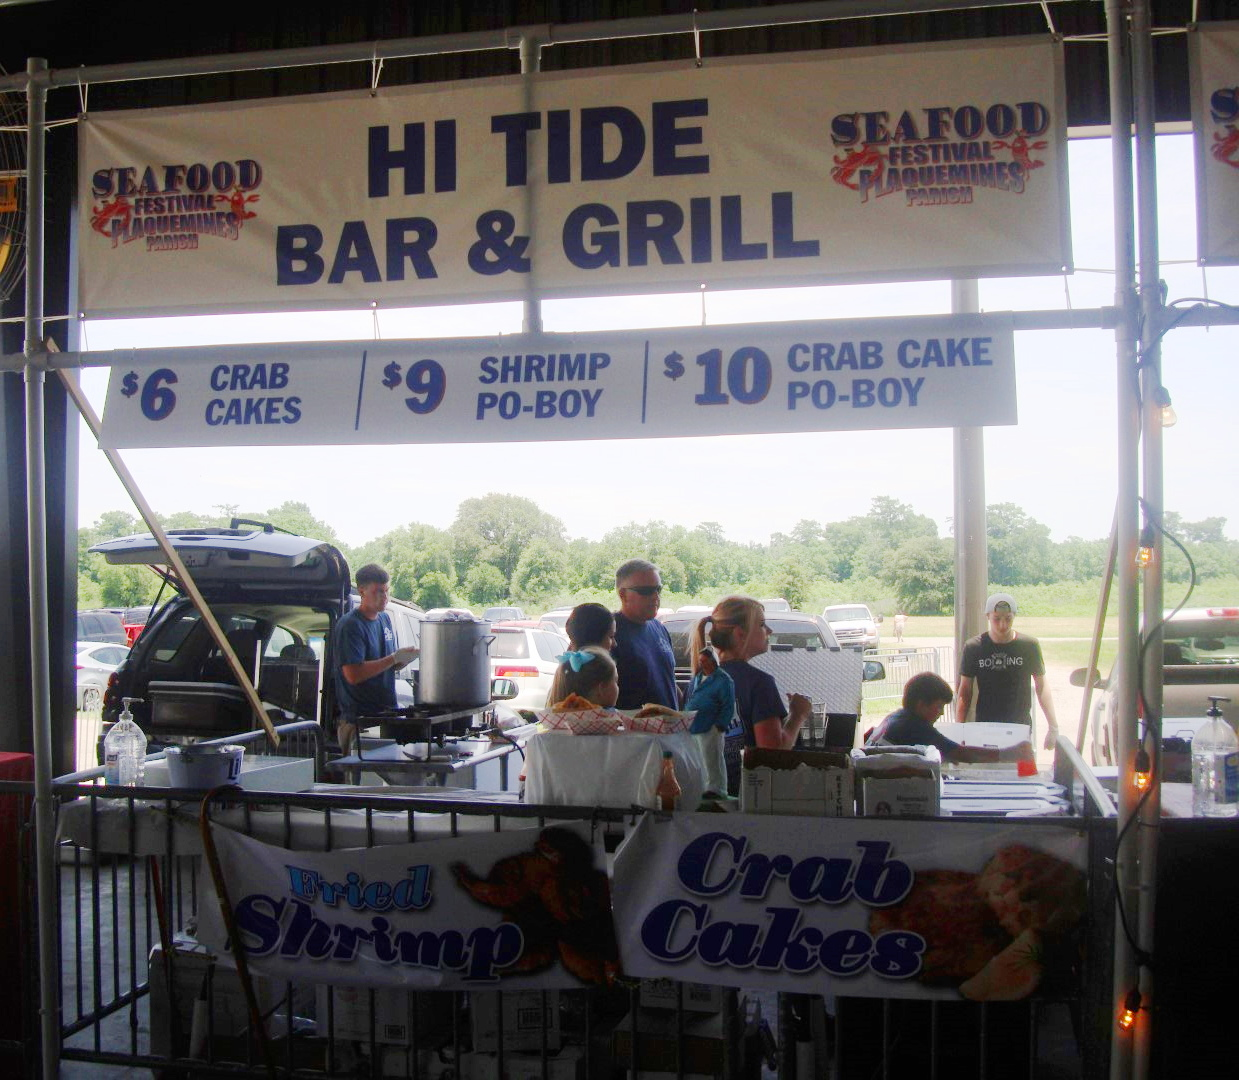 Hi Tide Bar And Grill 20510 Chef Menteur Hwy, New Orleans, LA 70129